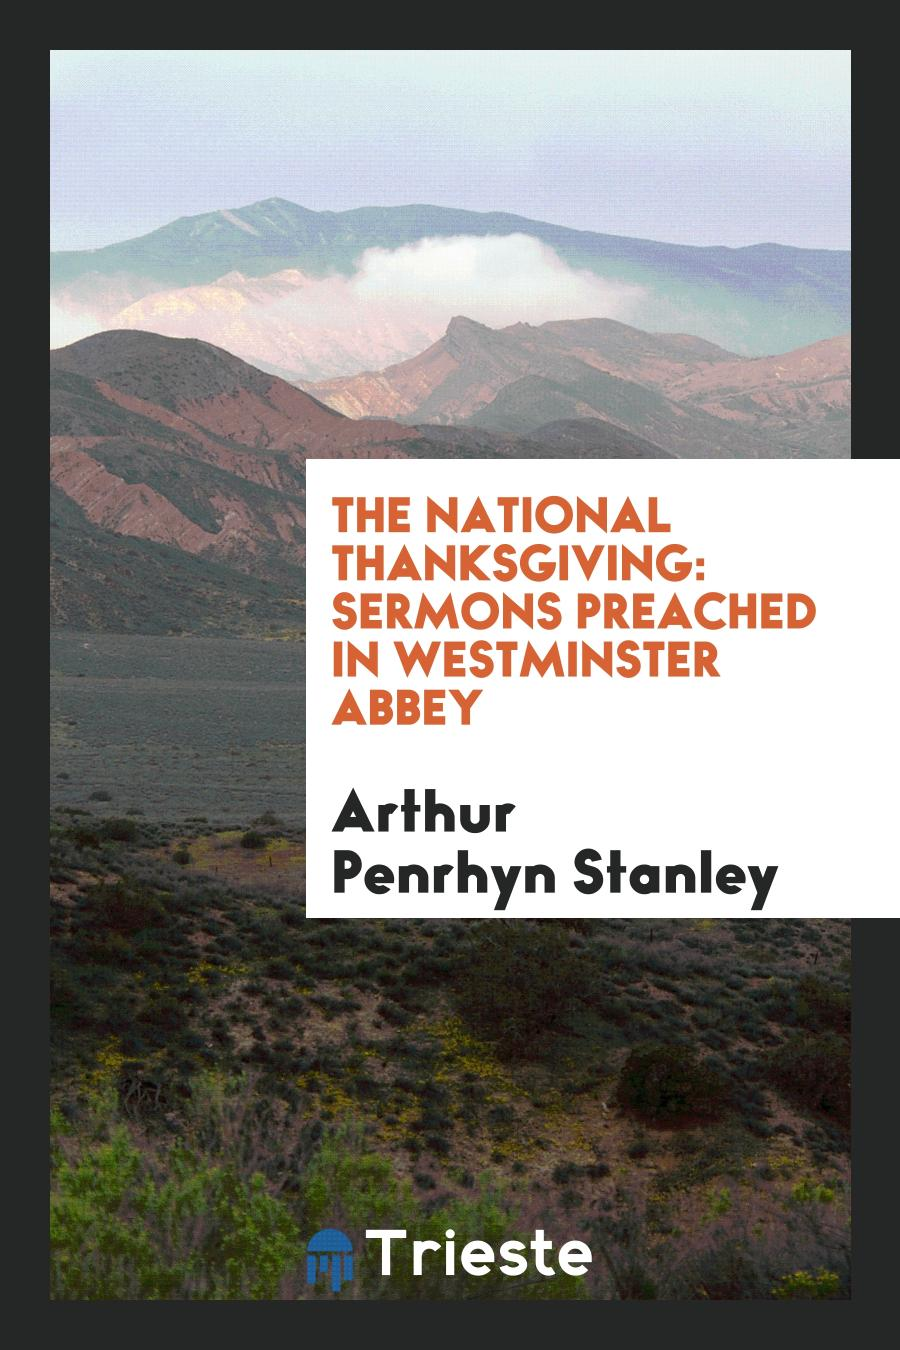 The National Thanksgiving: Sermons Preached in Westminster Abbey